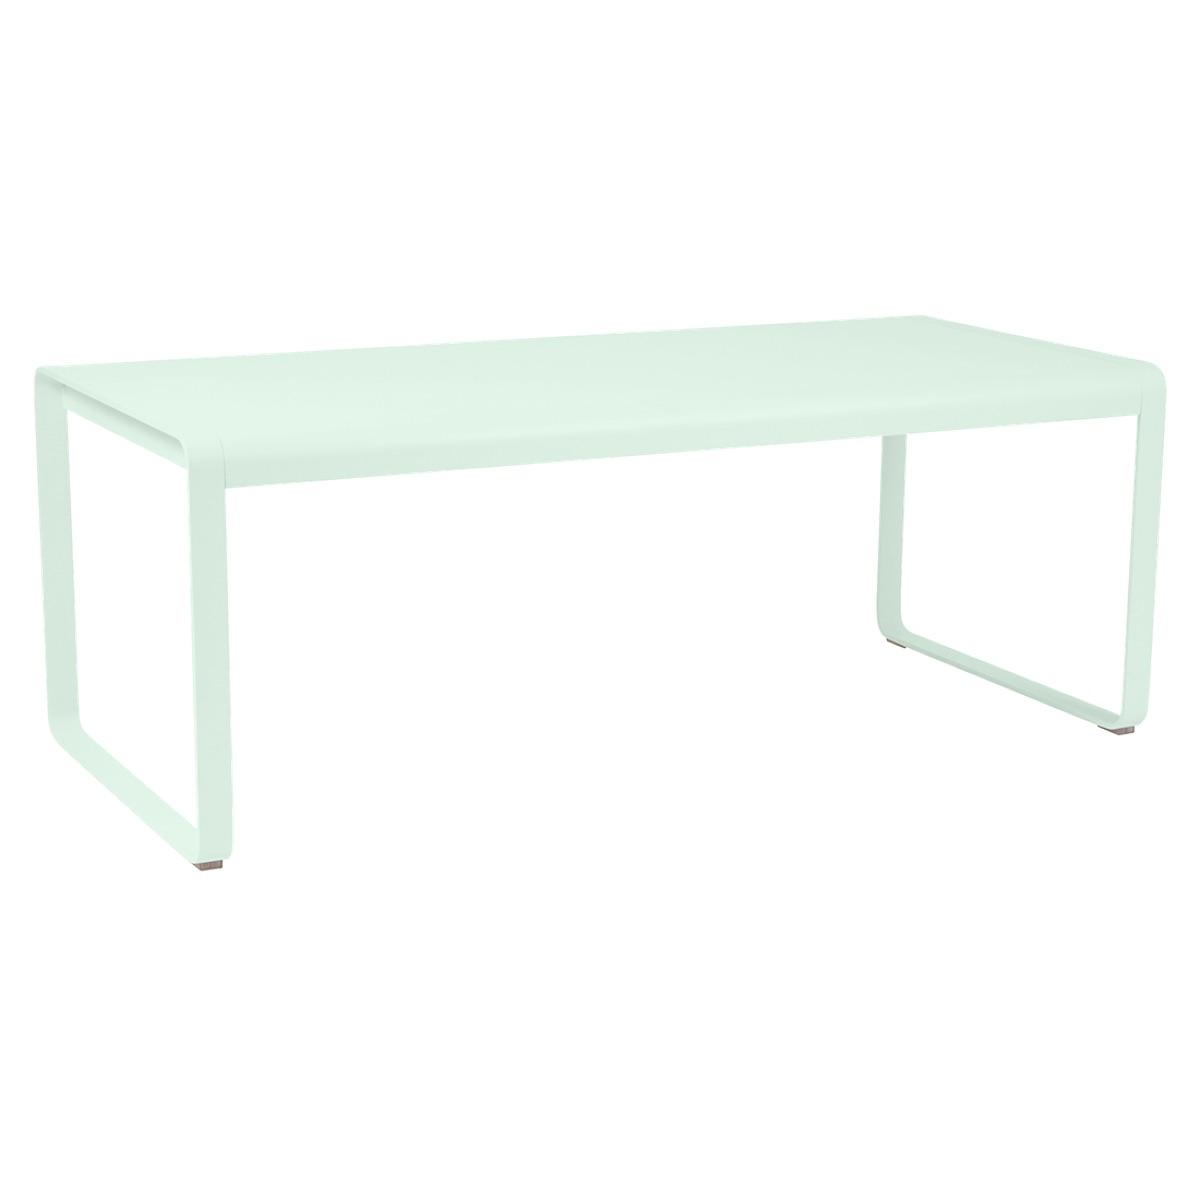 Table 90x196cm BELLEVIE PREMIUM Fermob menthe glaciale